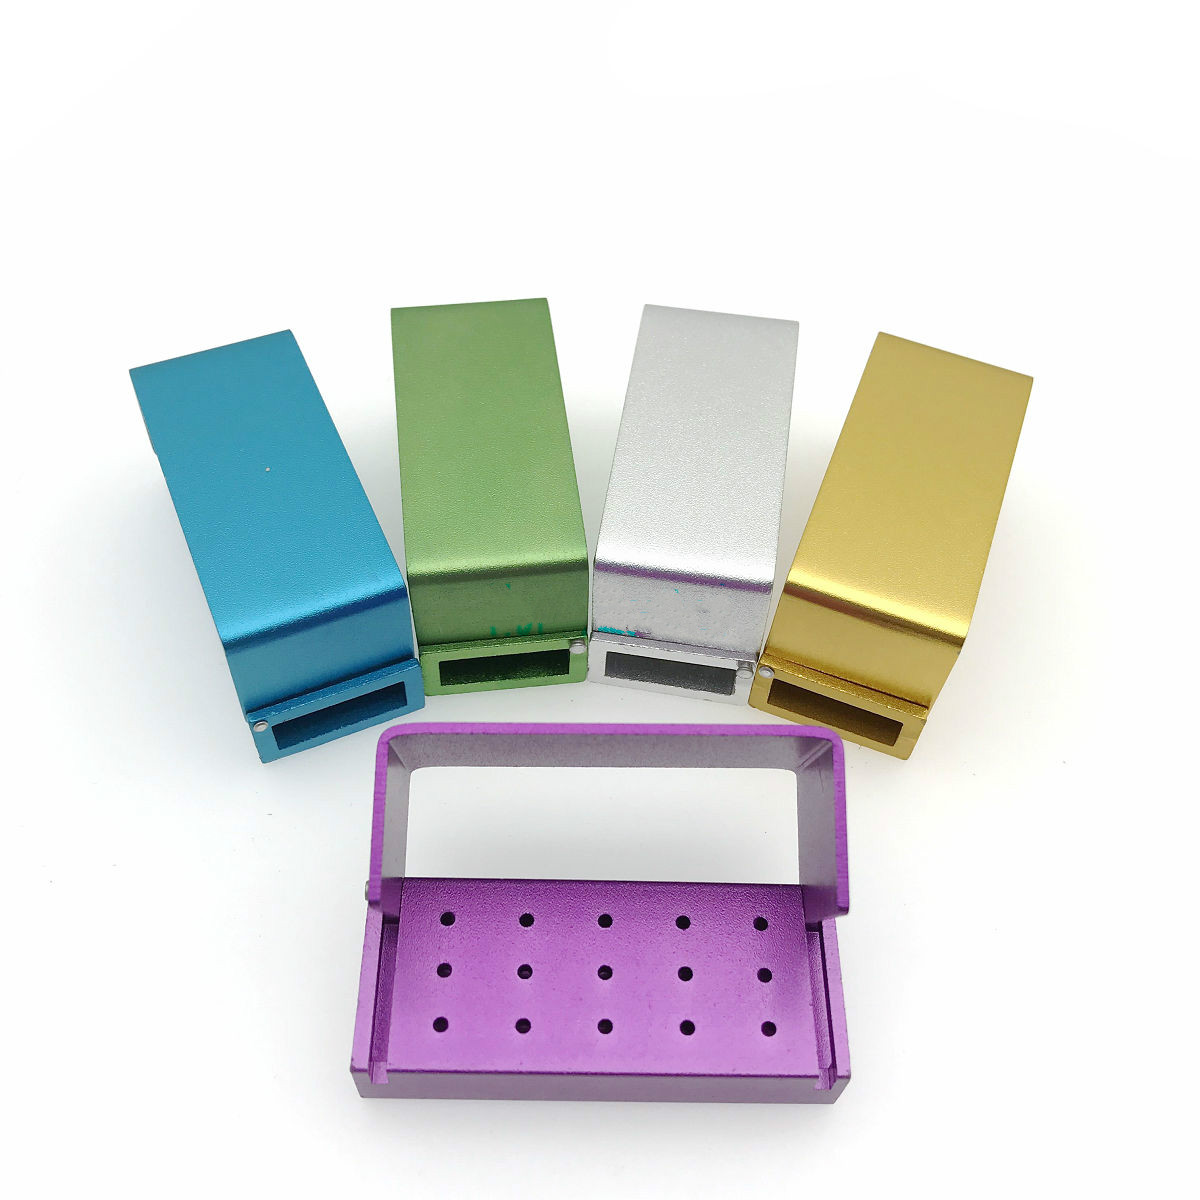 5Pcs /lot Dental Bur Holder Stand Autoclave Disinfection 15 Holes Box Case For High Speed Burs Dentistry Instrument